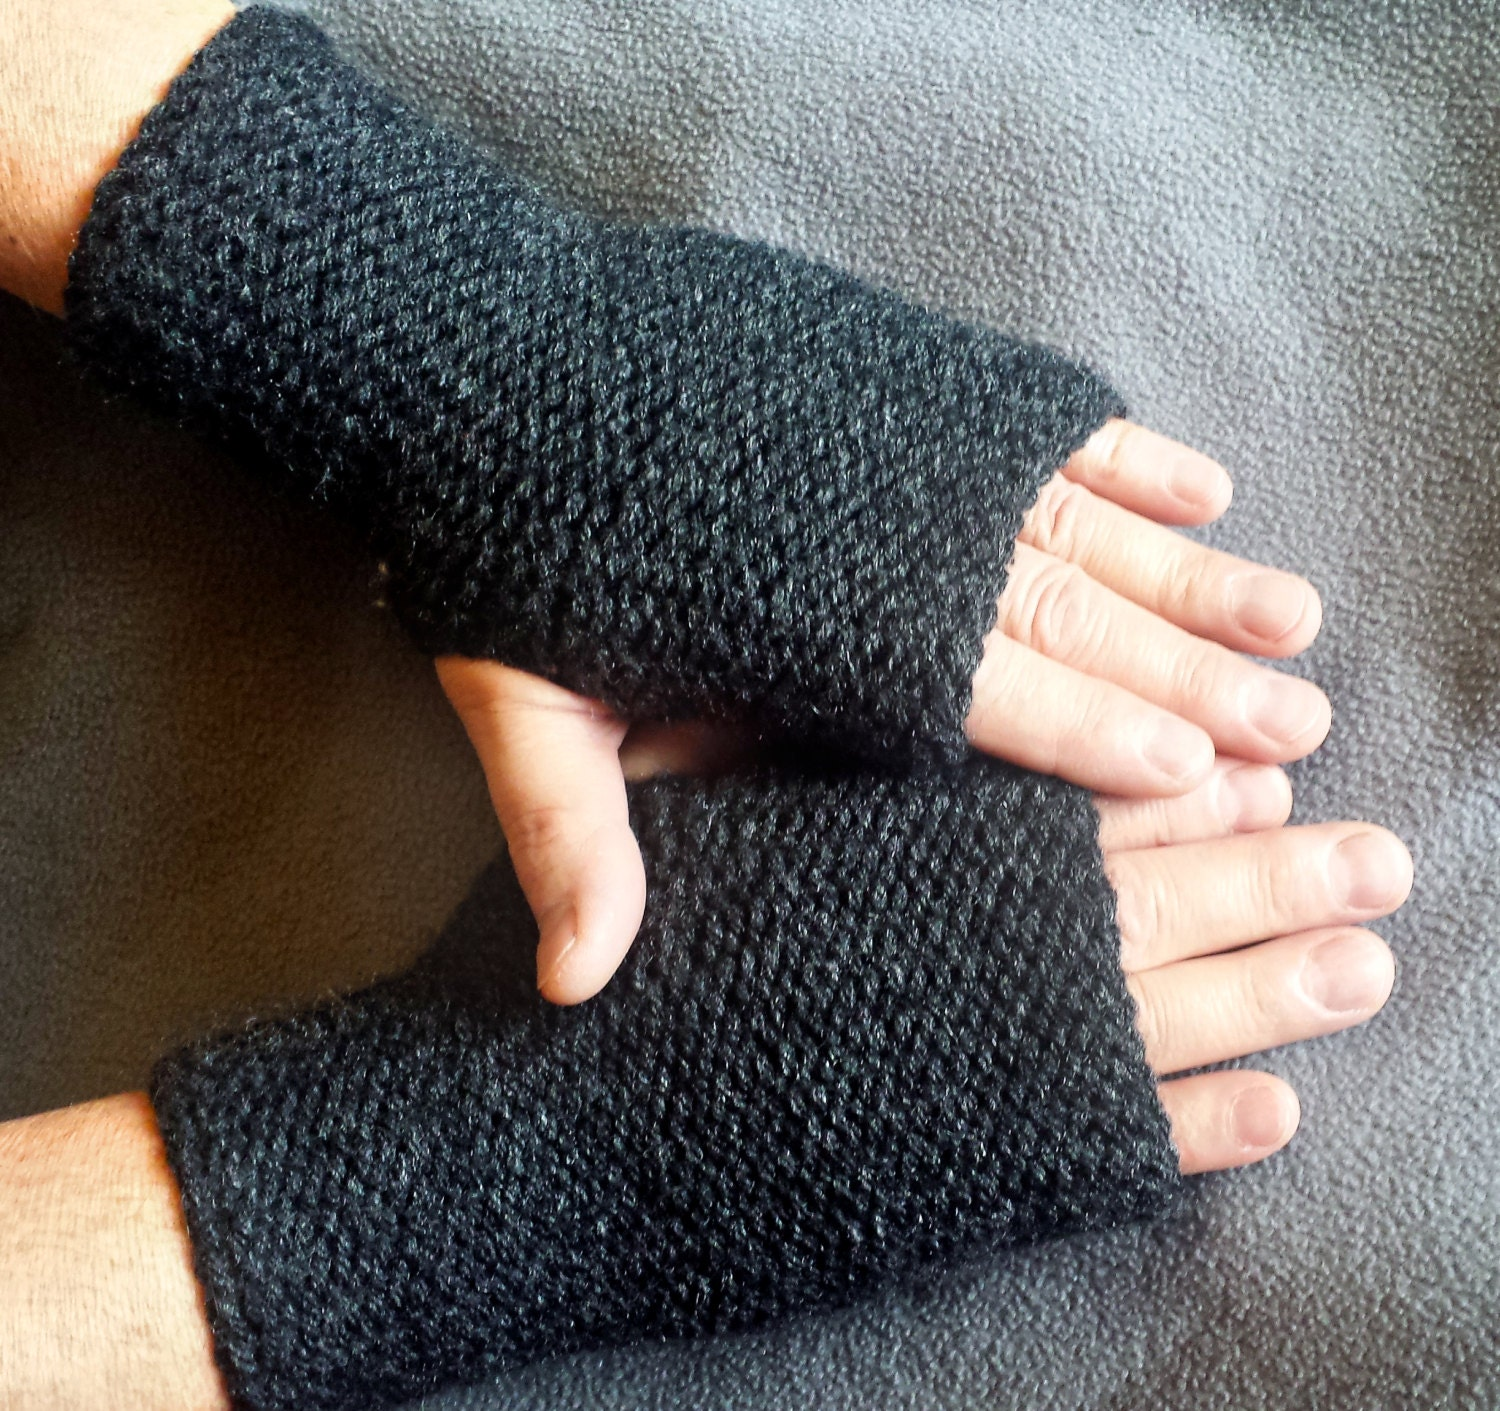 LOOM KNITTING PATTERNS Squishy Fingerless Gloves and Wrist Warmers ...